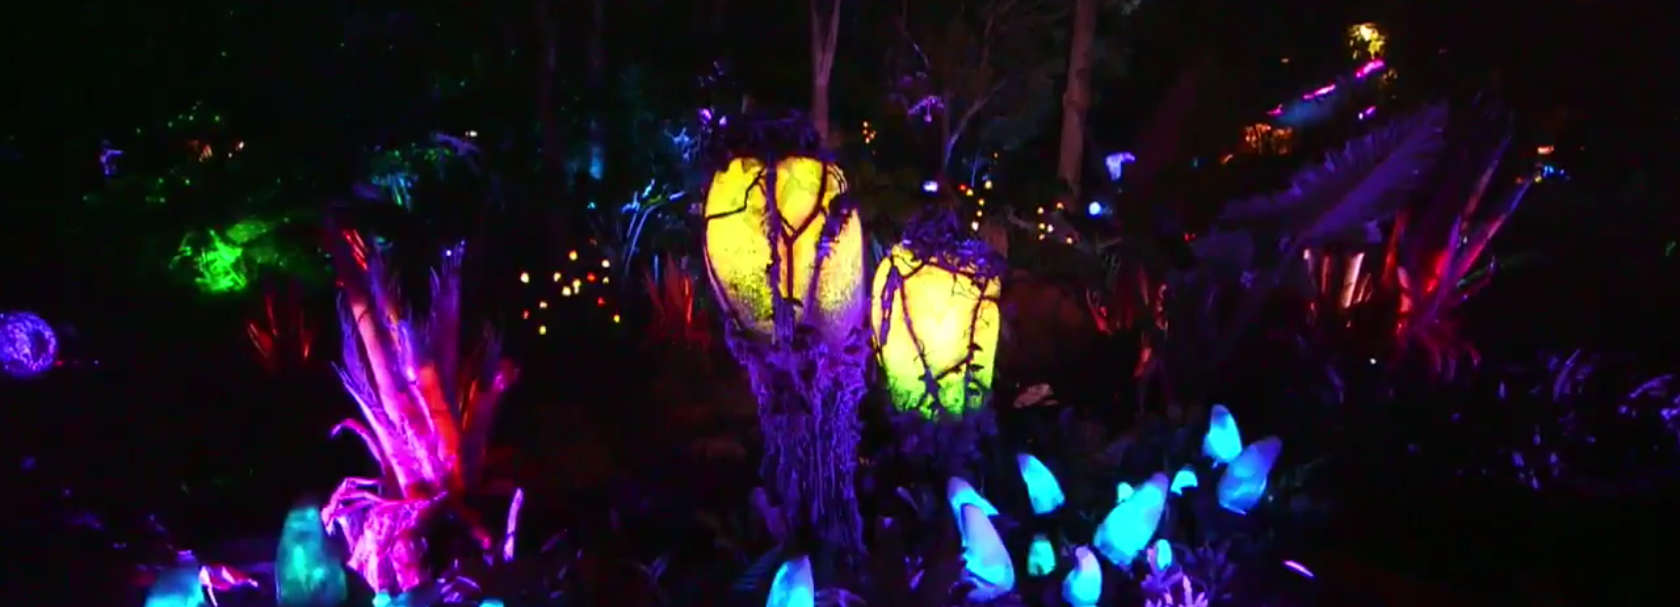 Native bioluminescent plants found within Pandora - The World of Avatar